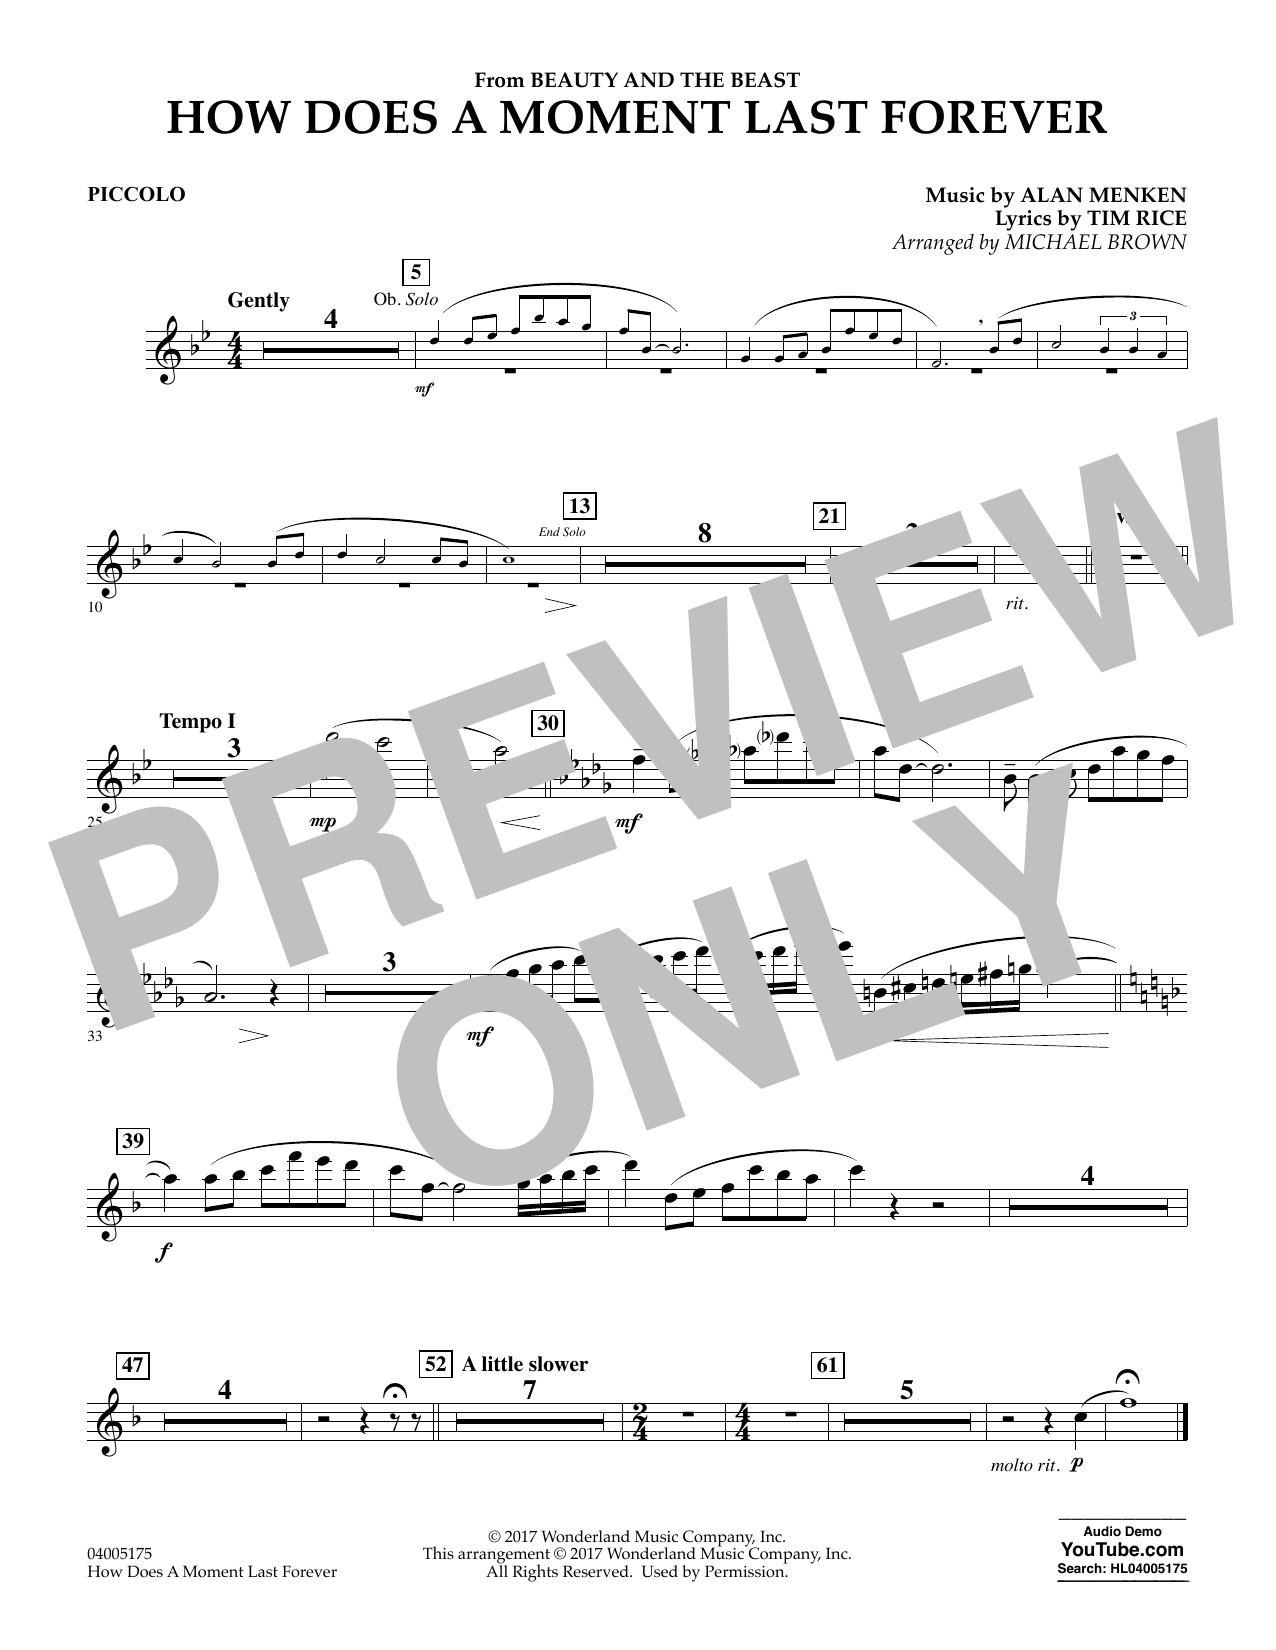 Michael Brown How Does a Moment Last Forever (from Beauty and the Beast) - Piccolo sheet music notes and chords. Download Printable PDF.